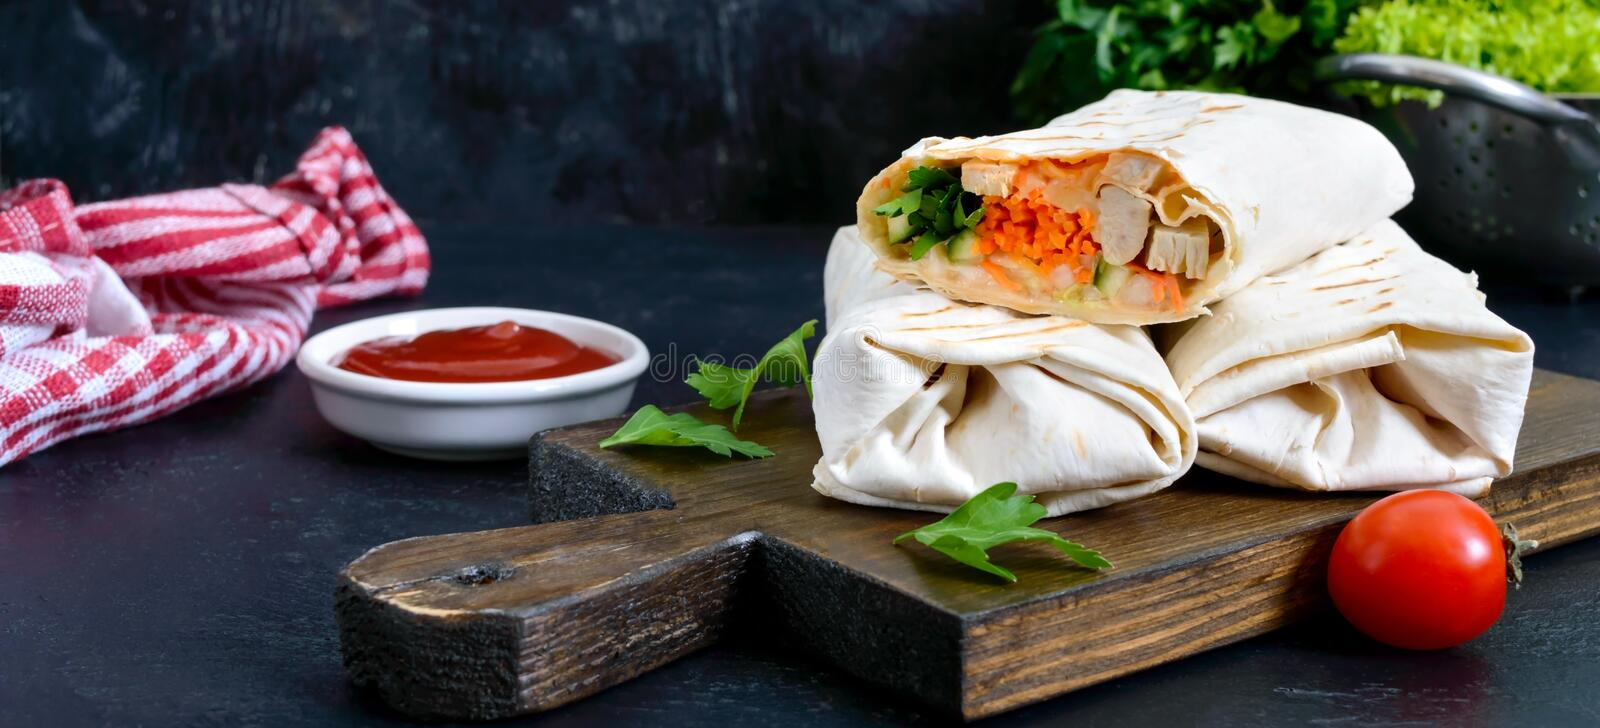 Delicious shawarma sandwich on a black background. Burritos wraps with grilled chicken and vegetables, greens. stock photo